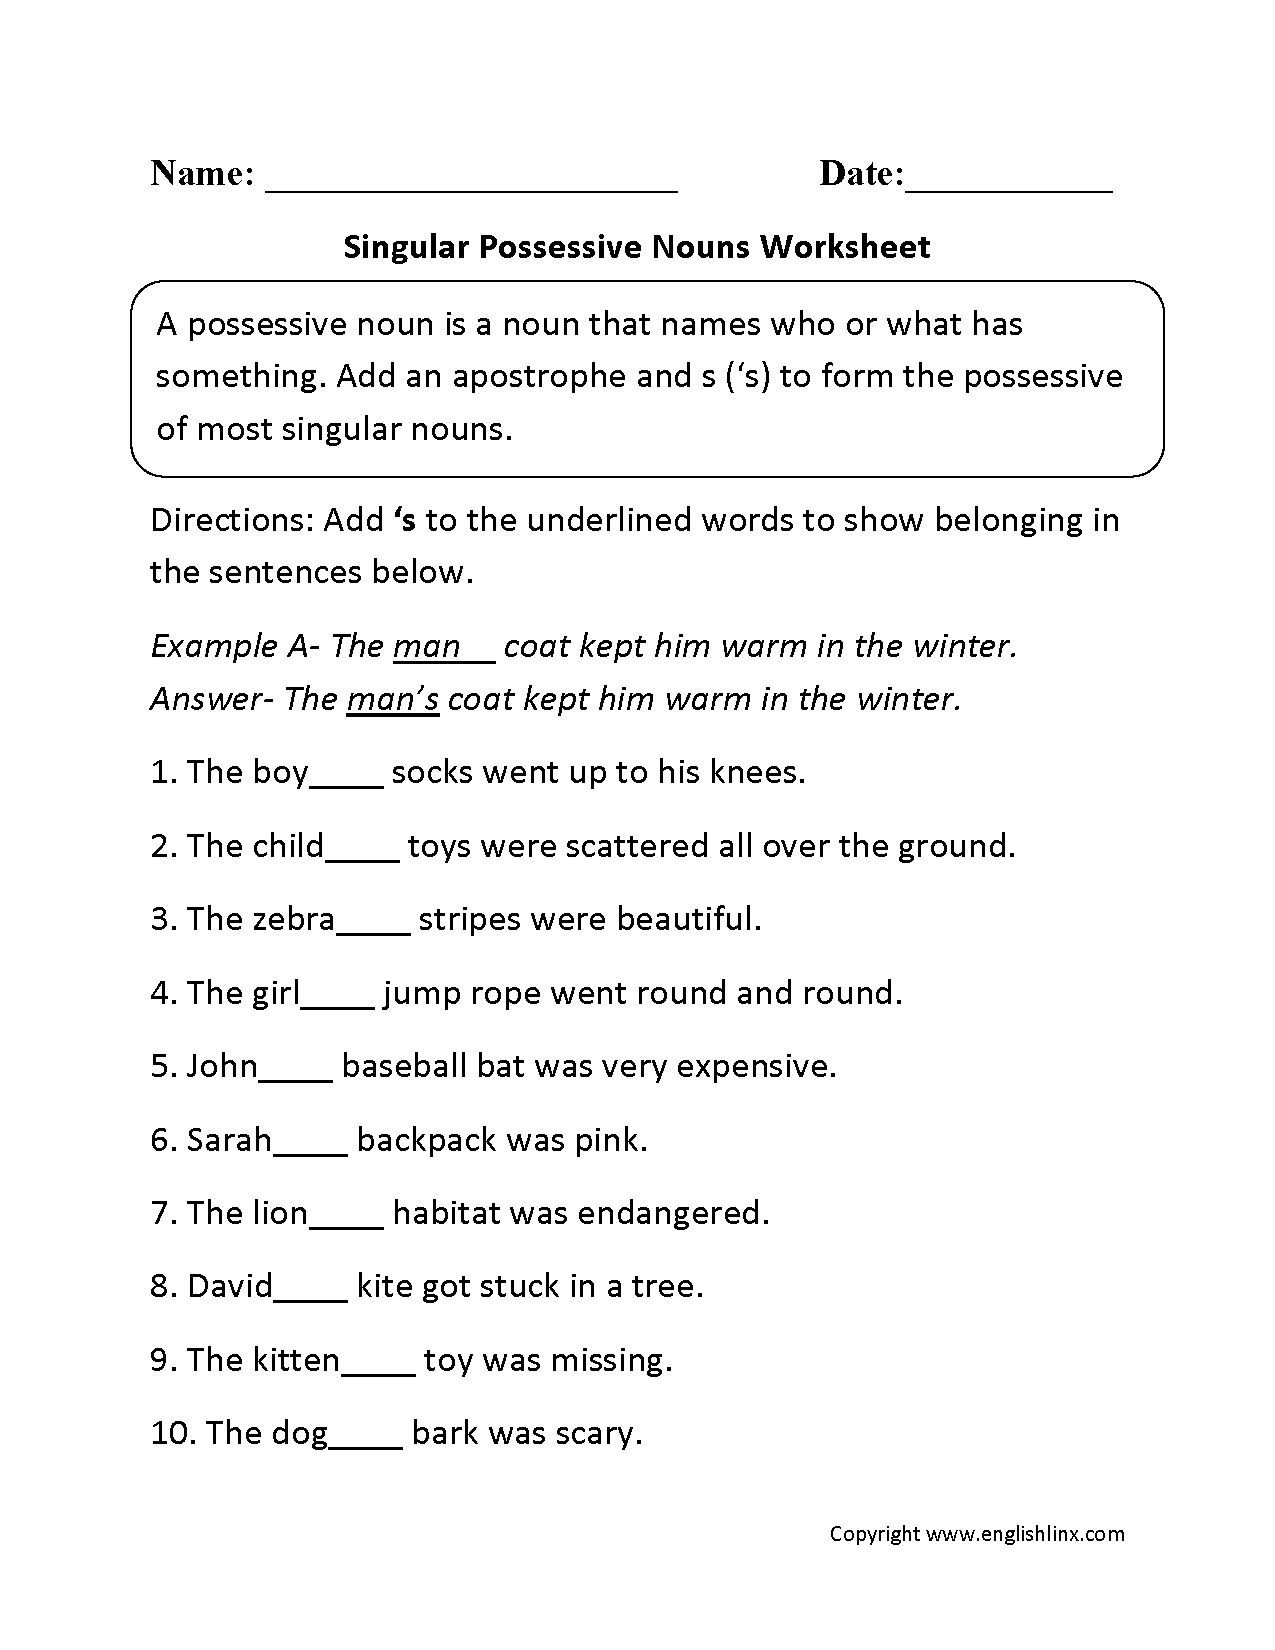 Possessive Nouns Worksheets 3rd Grade 5th Grade English Worksheets Nouns